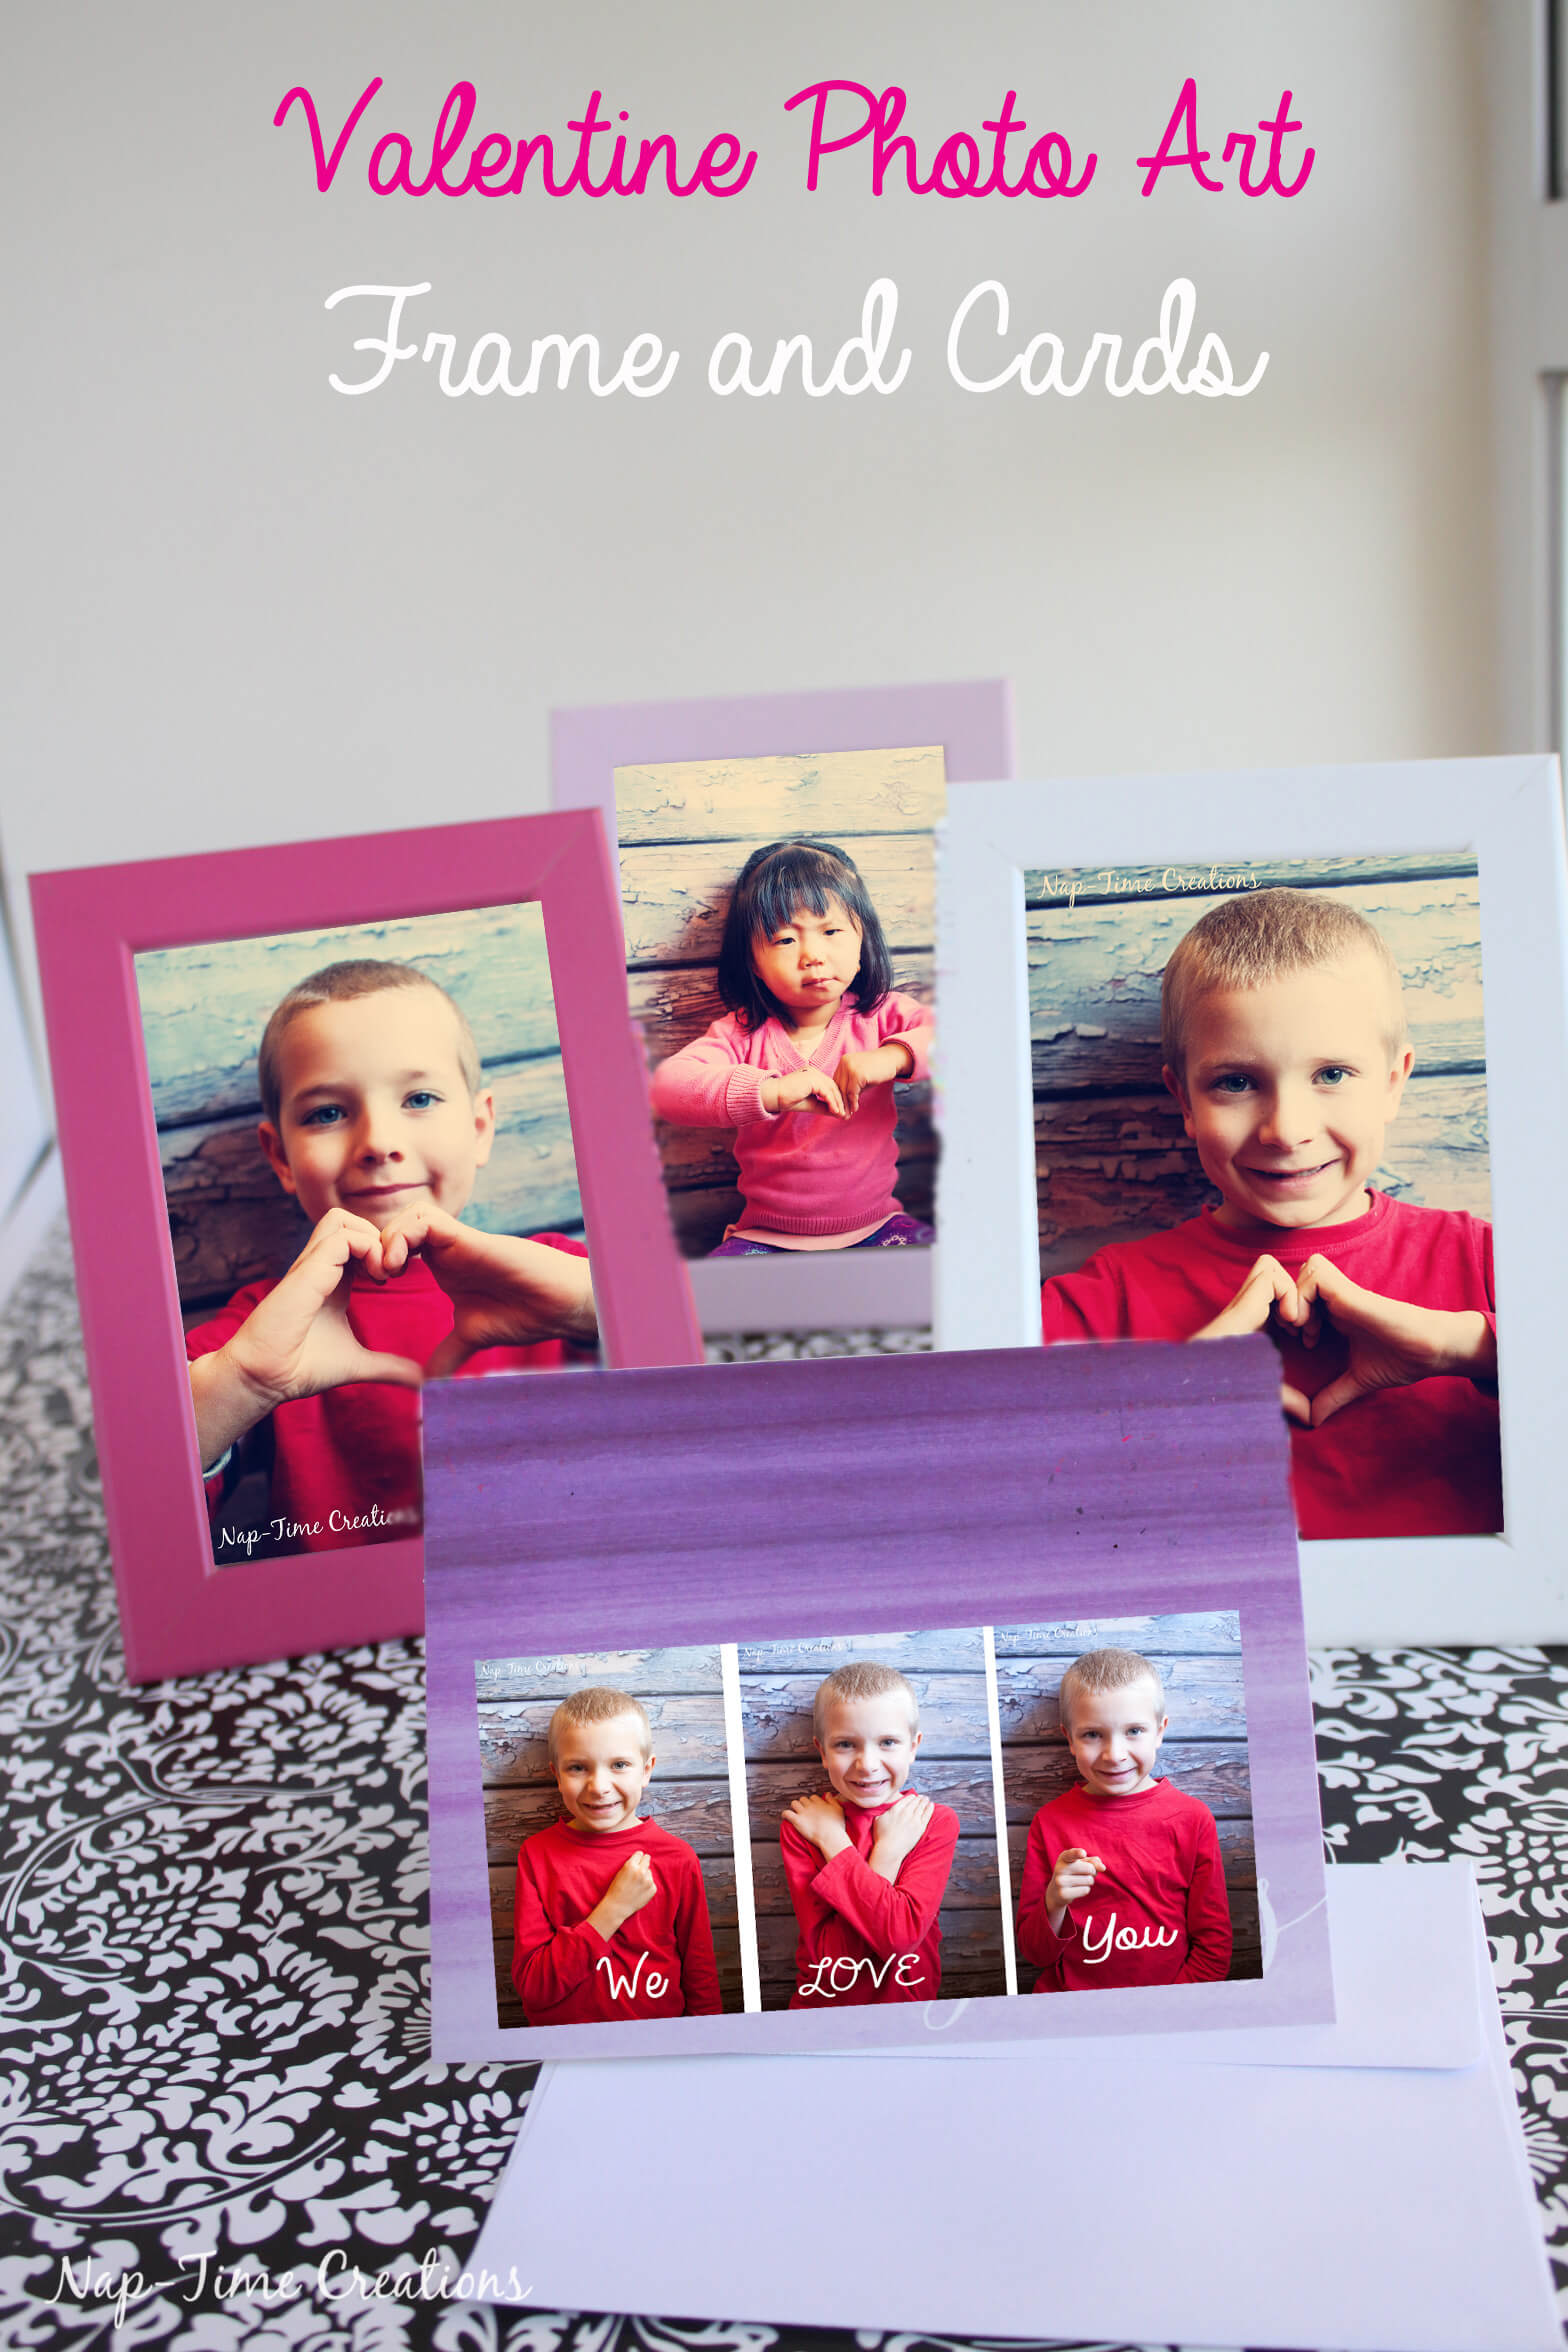 Valentines photo Art ideas for cards and frames from Nap-Time Creations 1